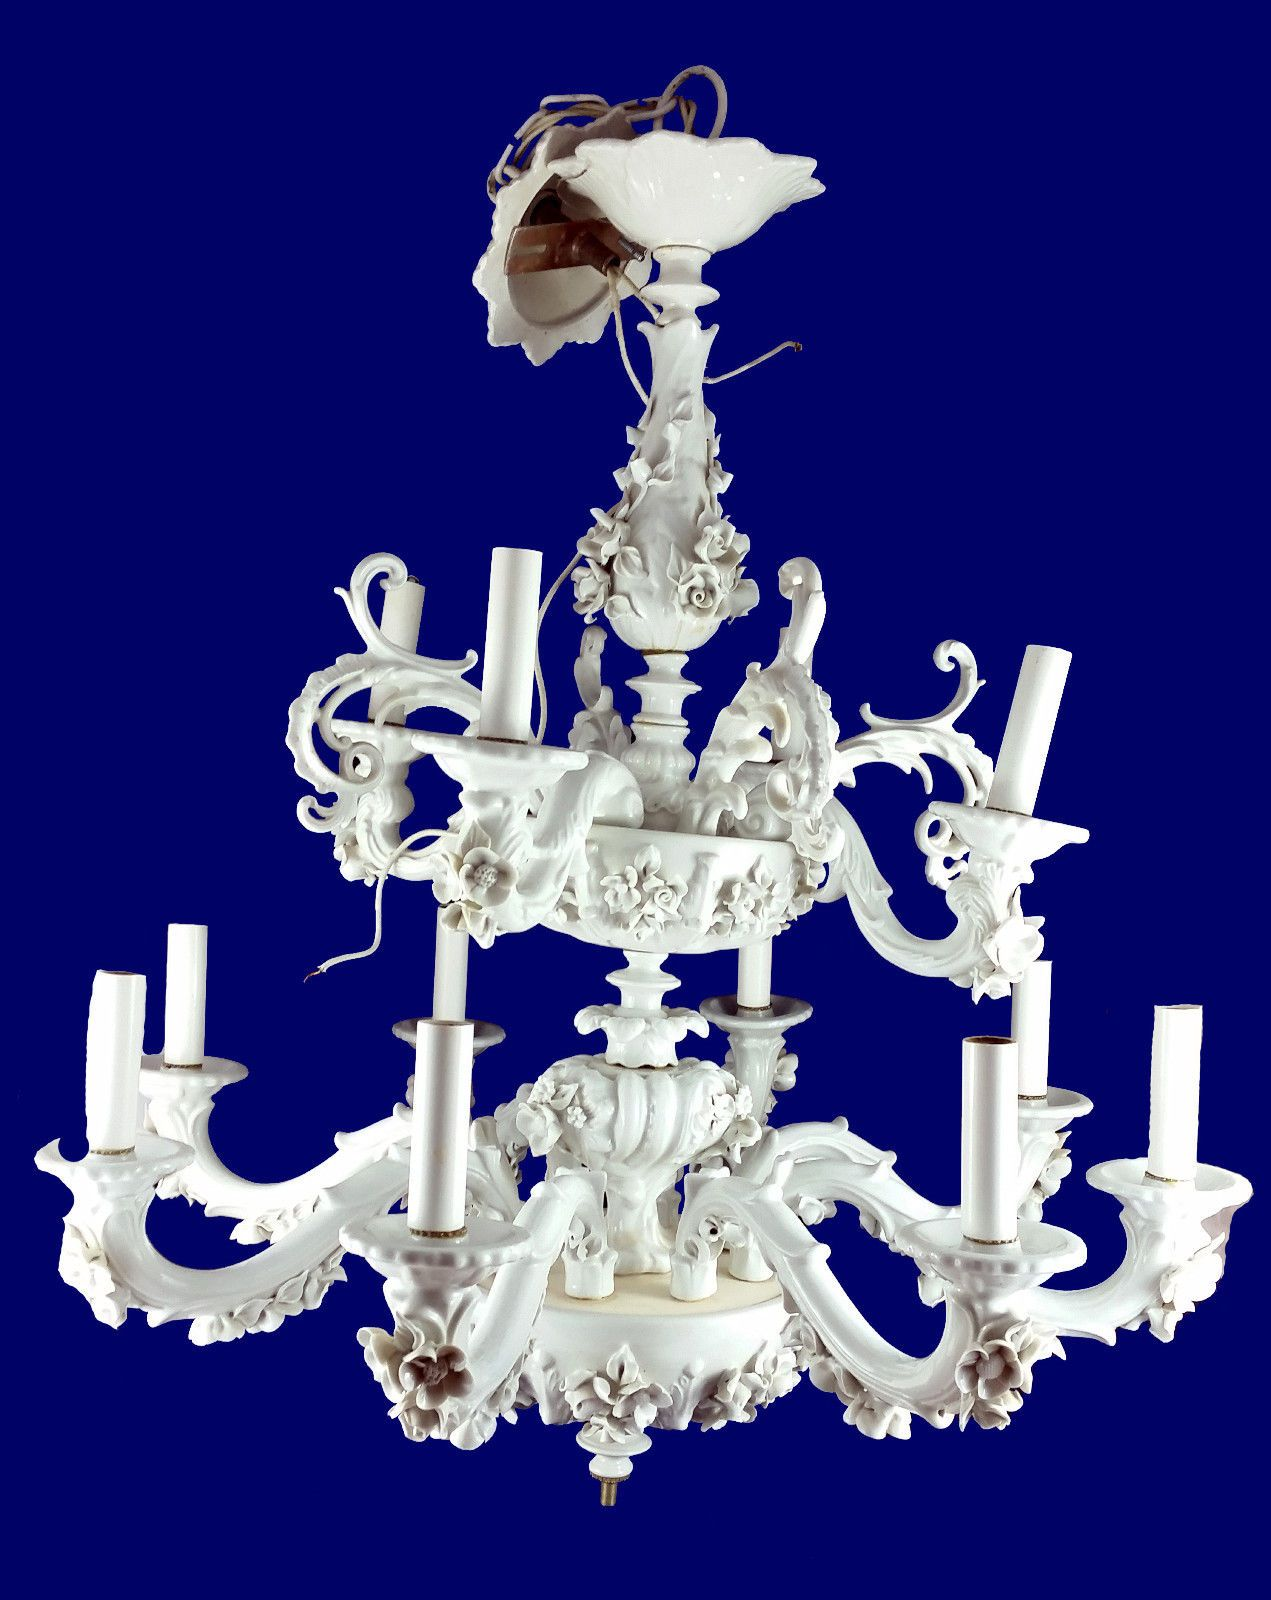 Antique italian mangani porcellane darte italy chandelier white antique italian mangani porcellane darte italy chandelier white collection ebay arubaitofo Image collections